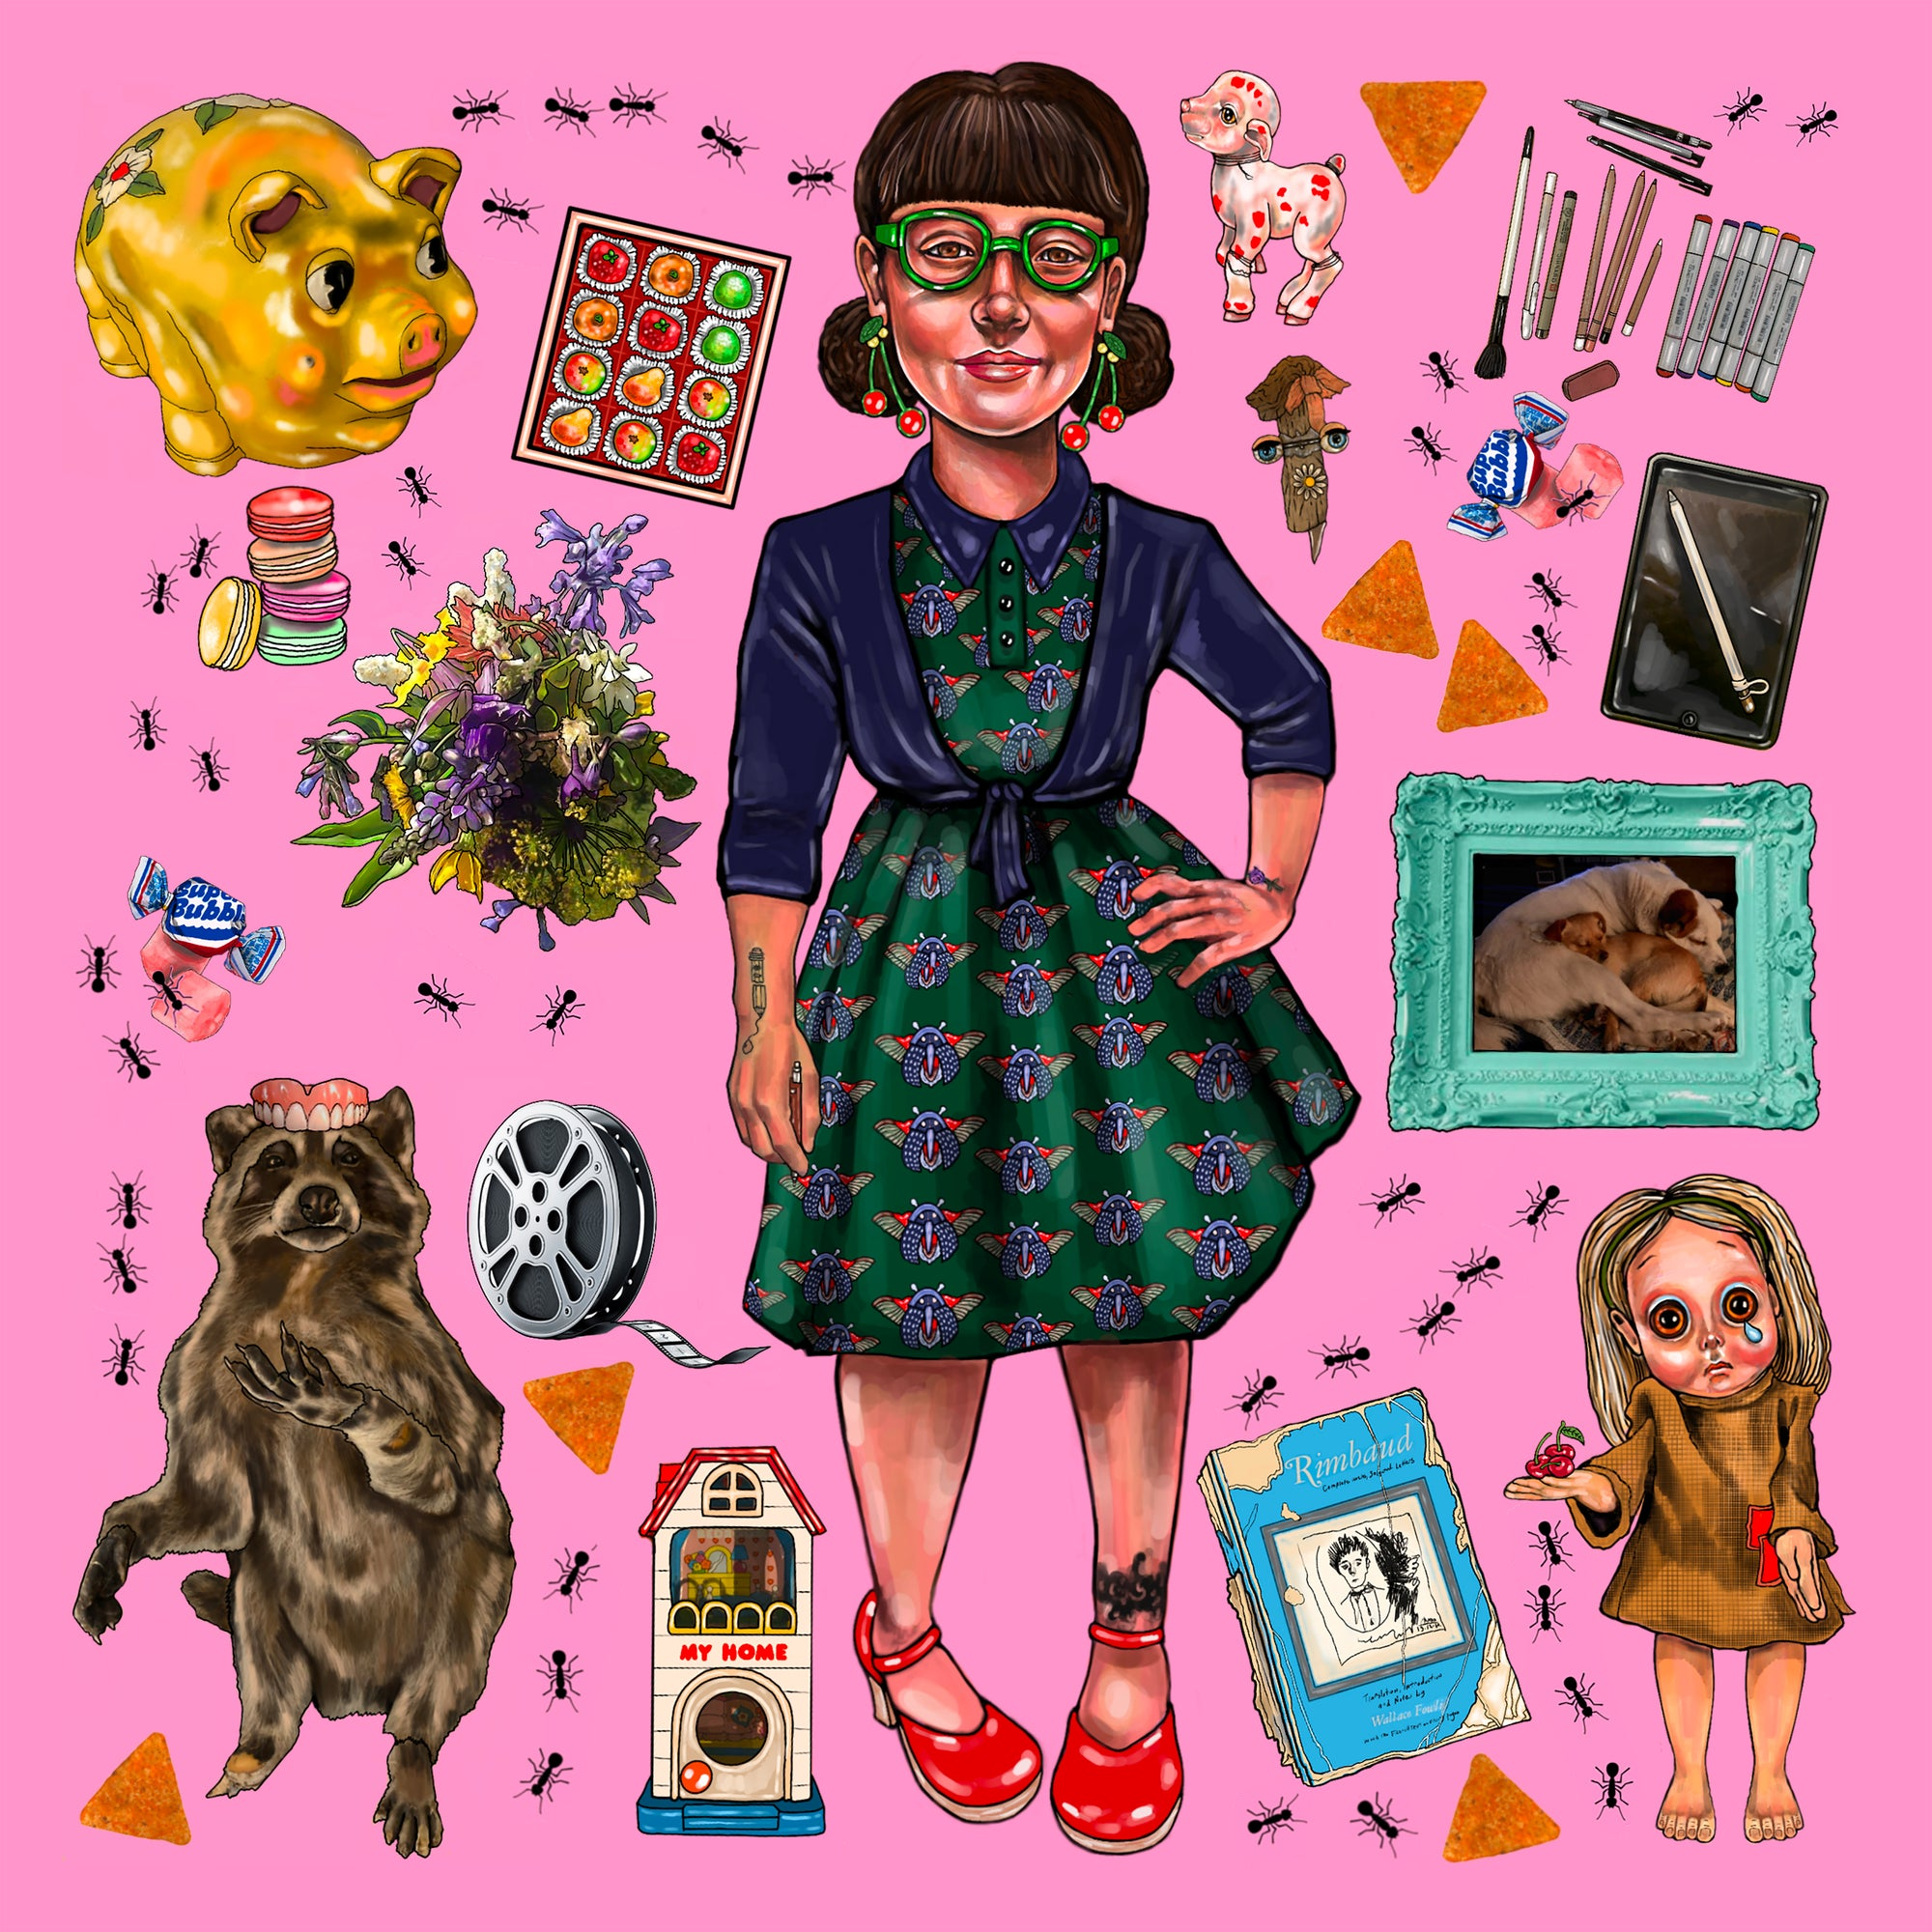 Courtney Blazon Illustrations